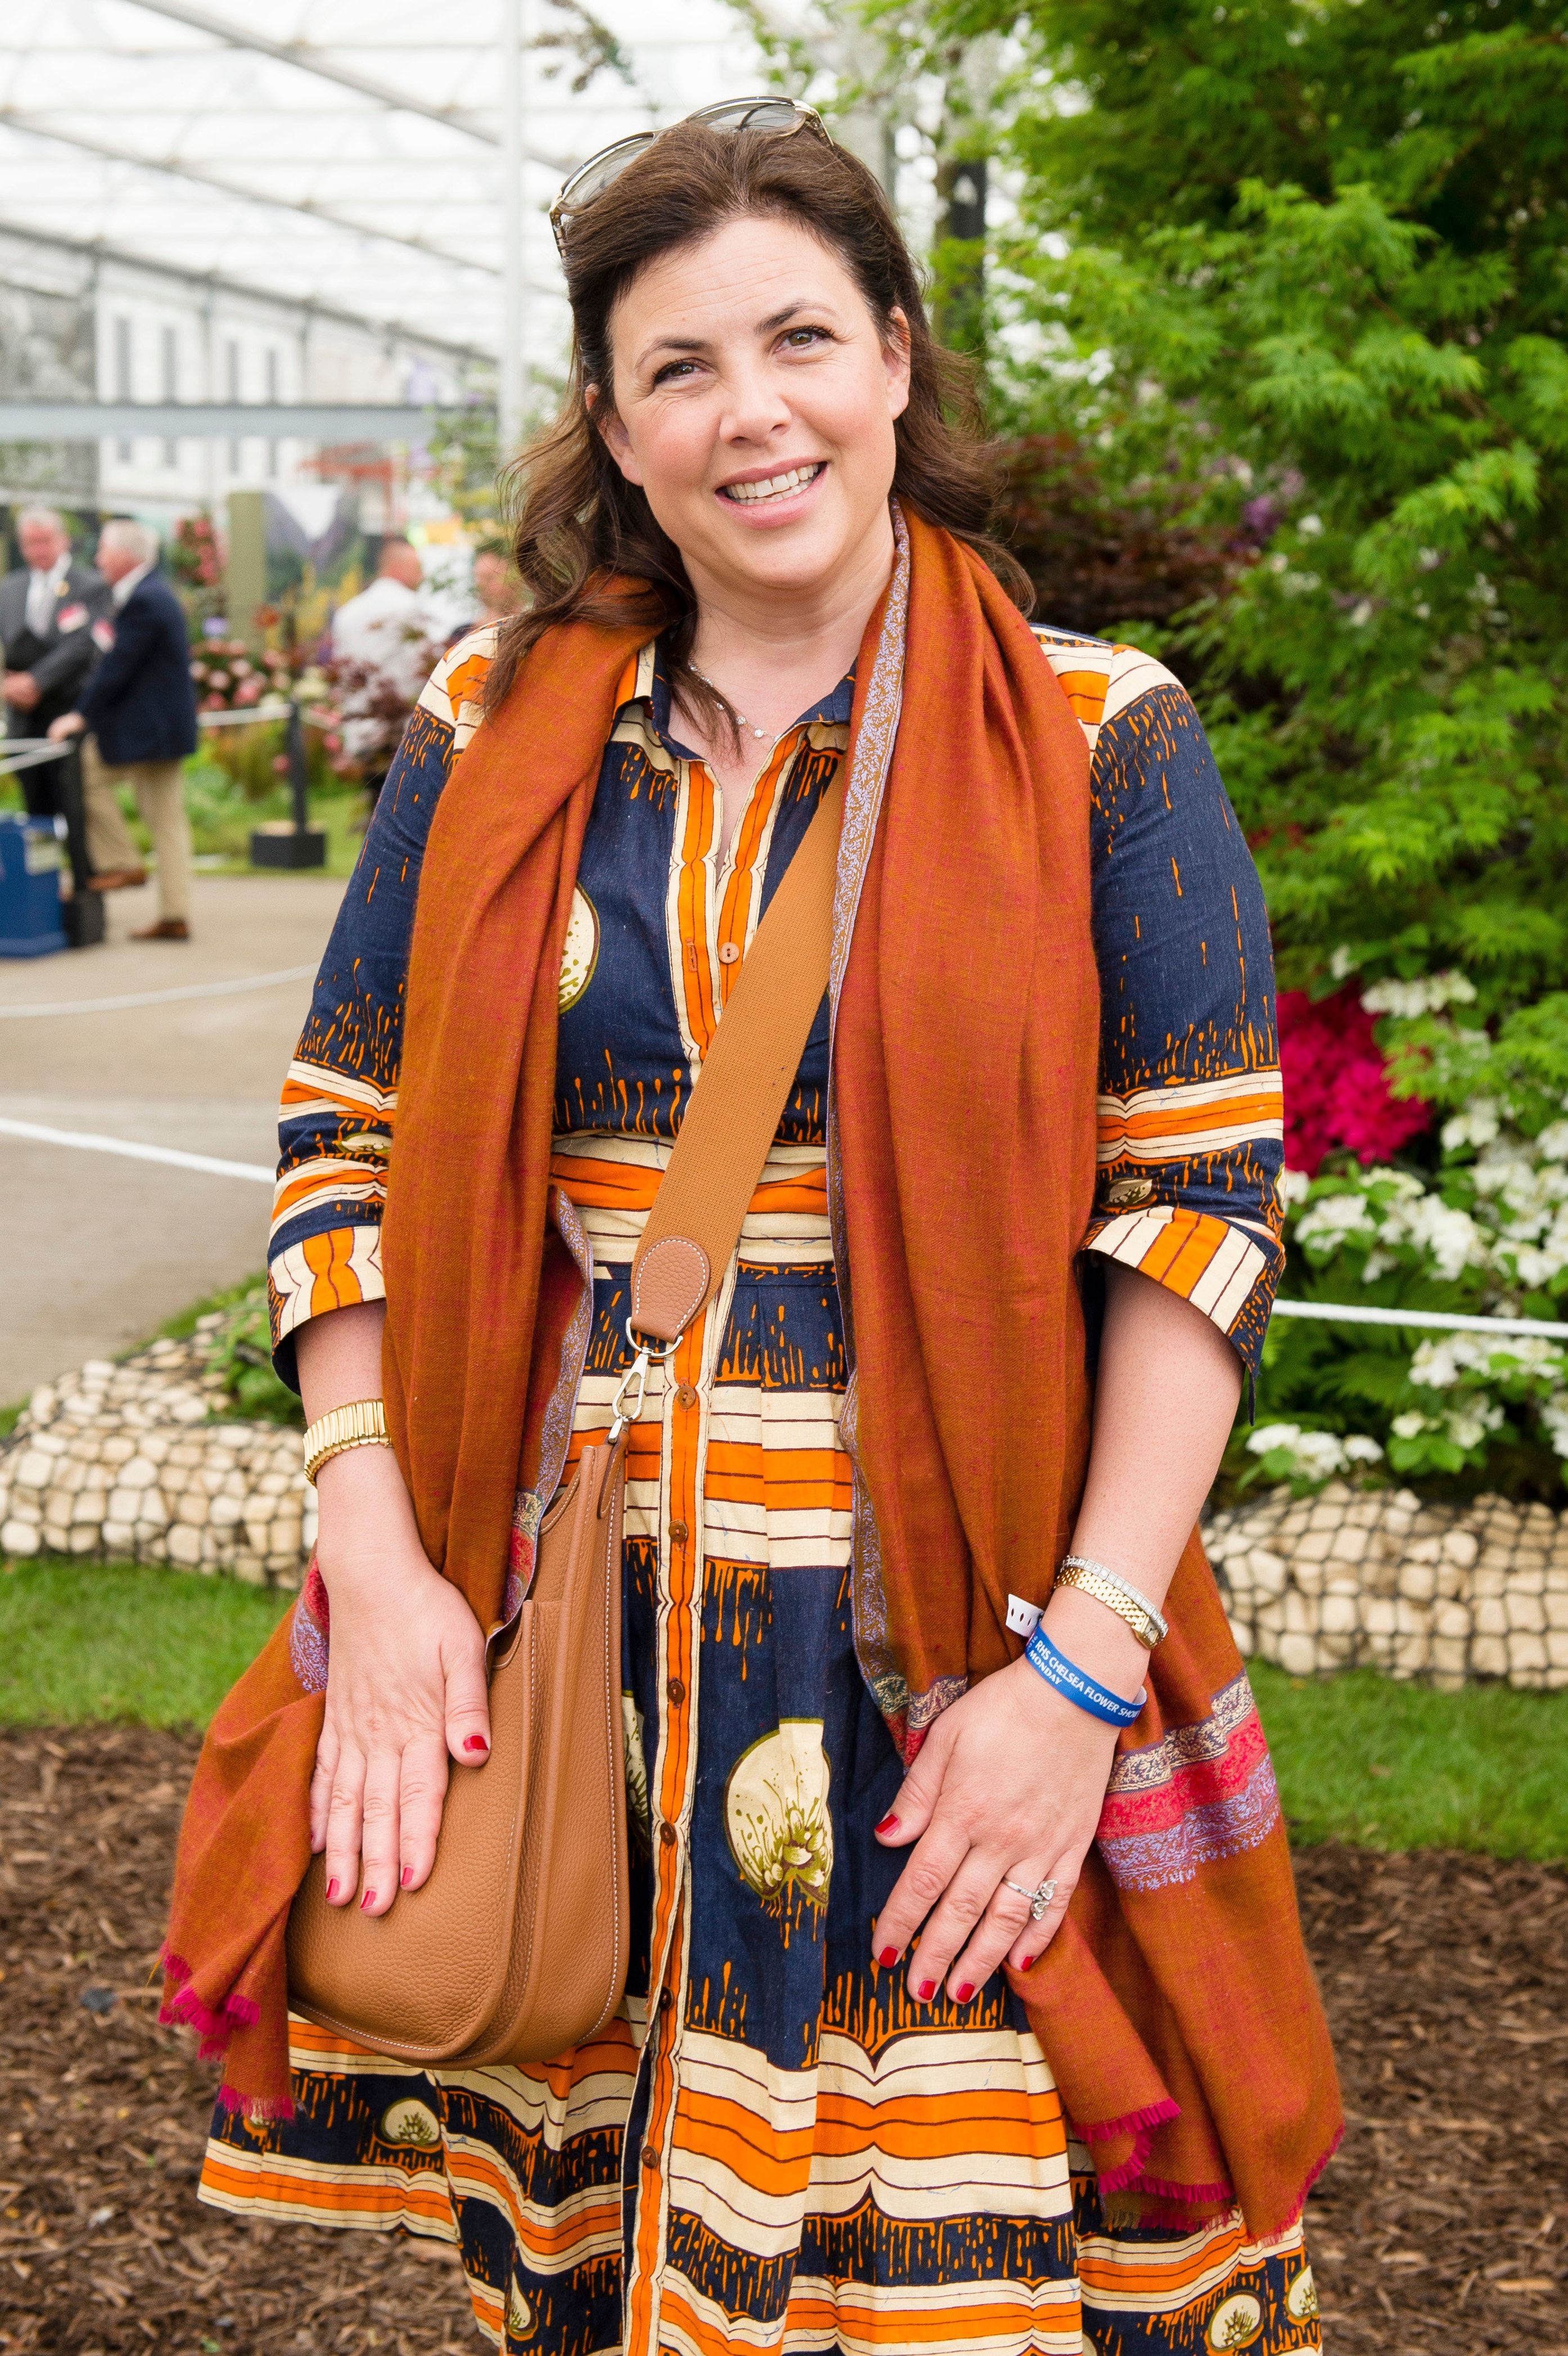 Kirstie Allsopp's Twitter Account Deactivated Following 'Smashed iPads'